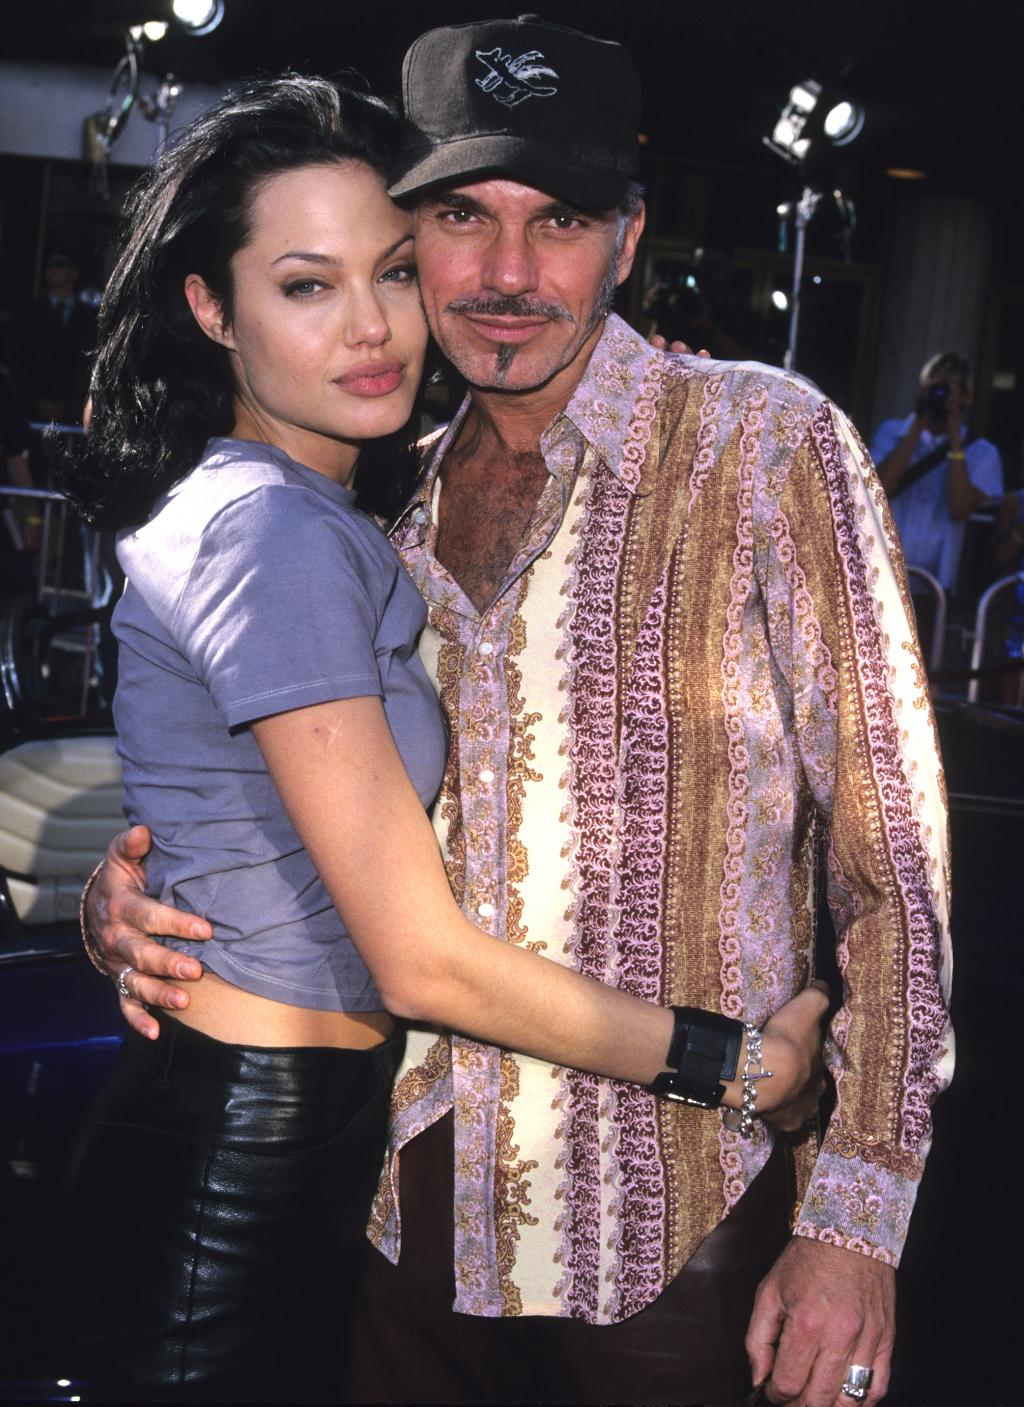 Billy Bob Thornton Says Angelina Jolie 'Seems Okay' Amid Brad Pitt Divorce